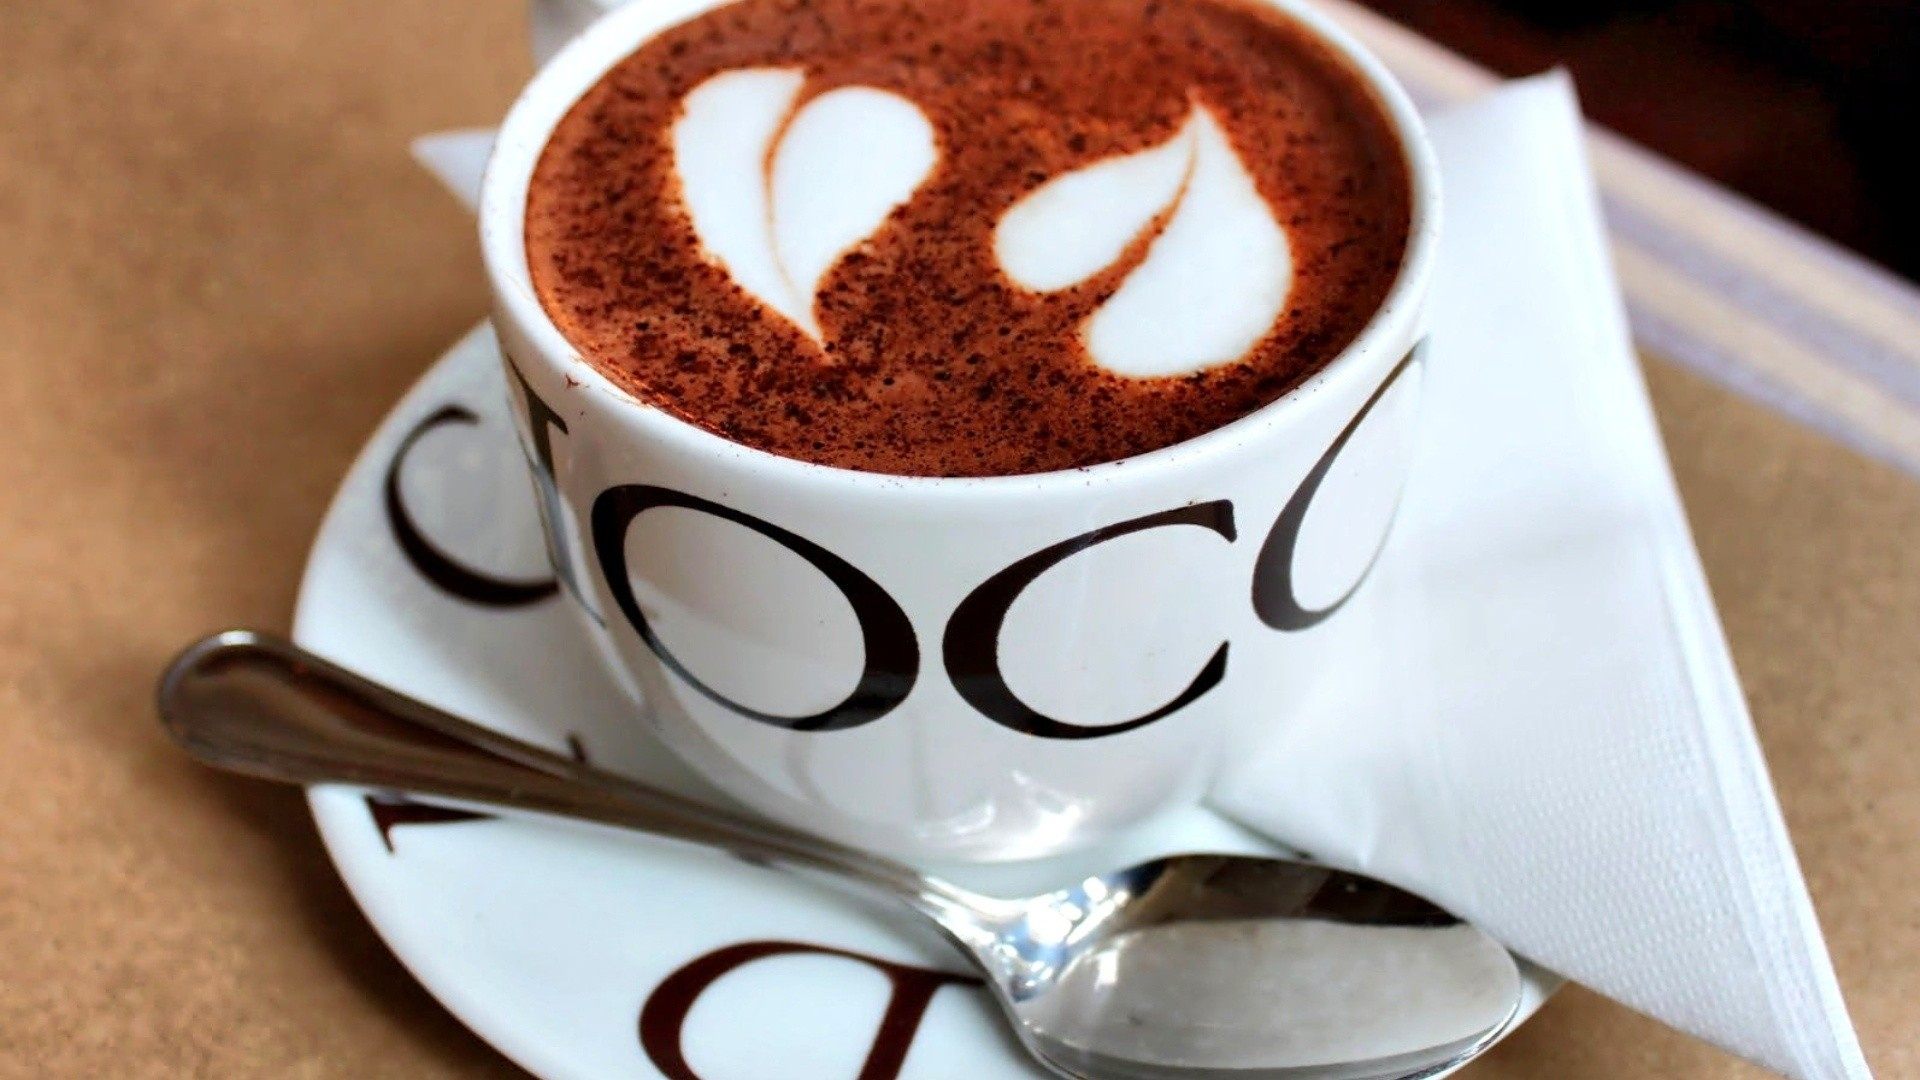 Free download Love Coffee Windows 81 Theme And Wallpapers All For